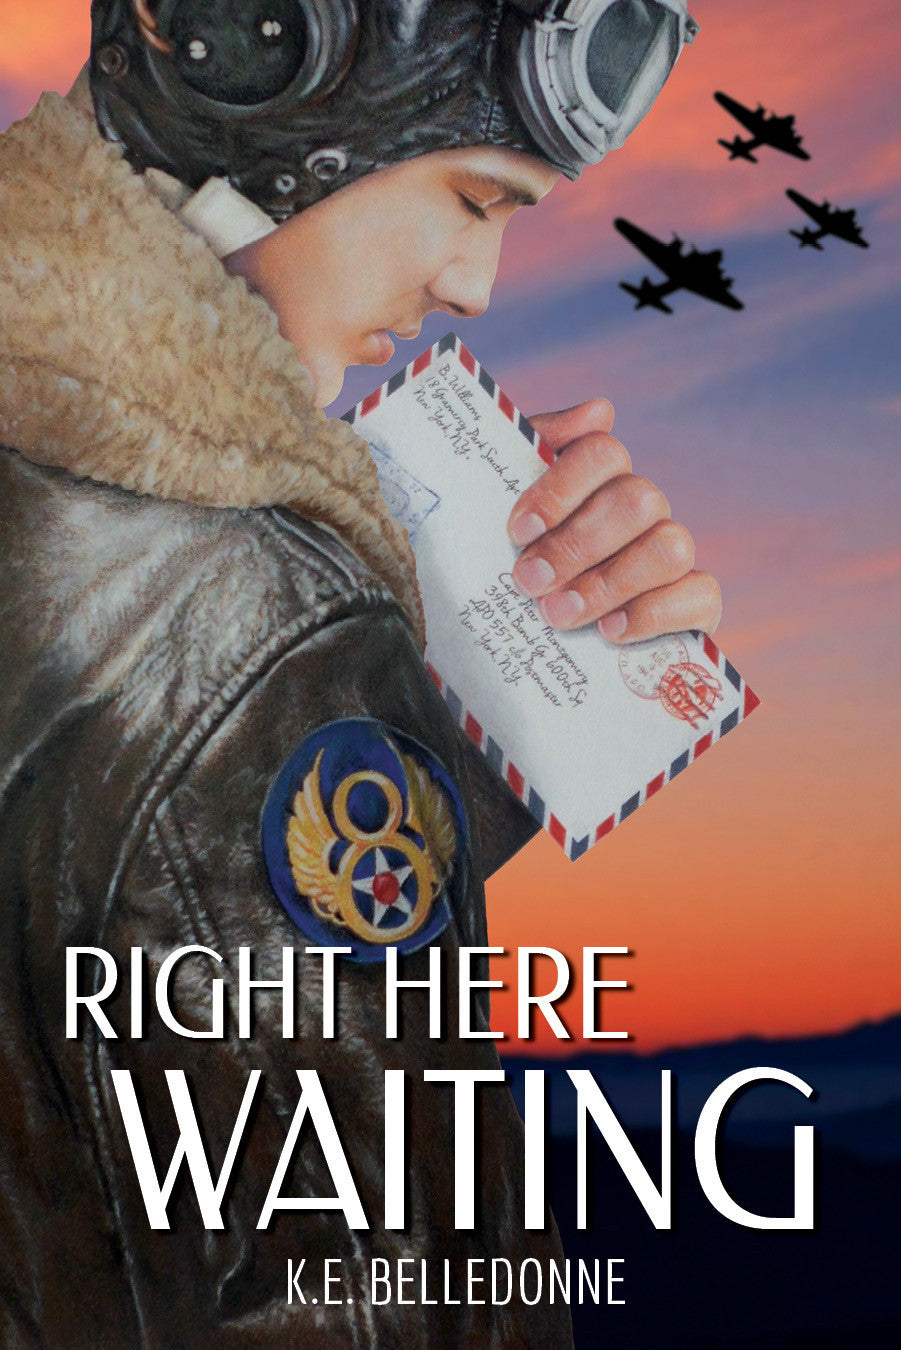 Right Here Waiting by K.E. Belledonne (printed book)